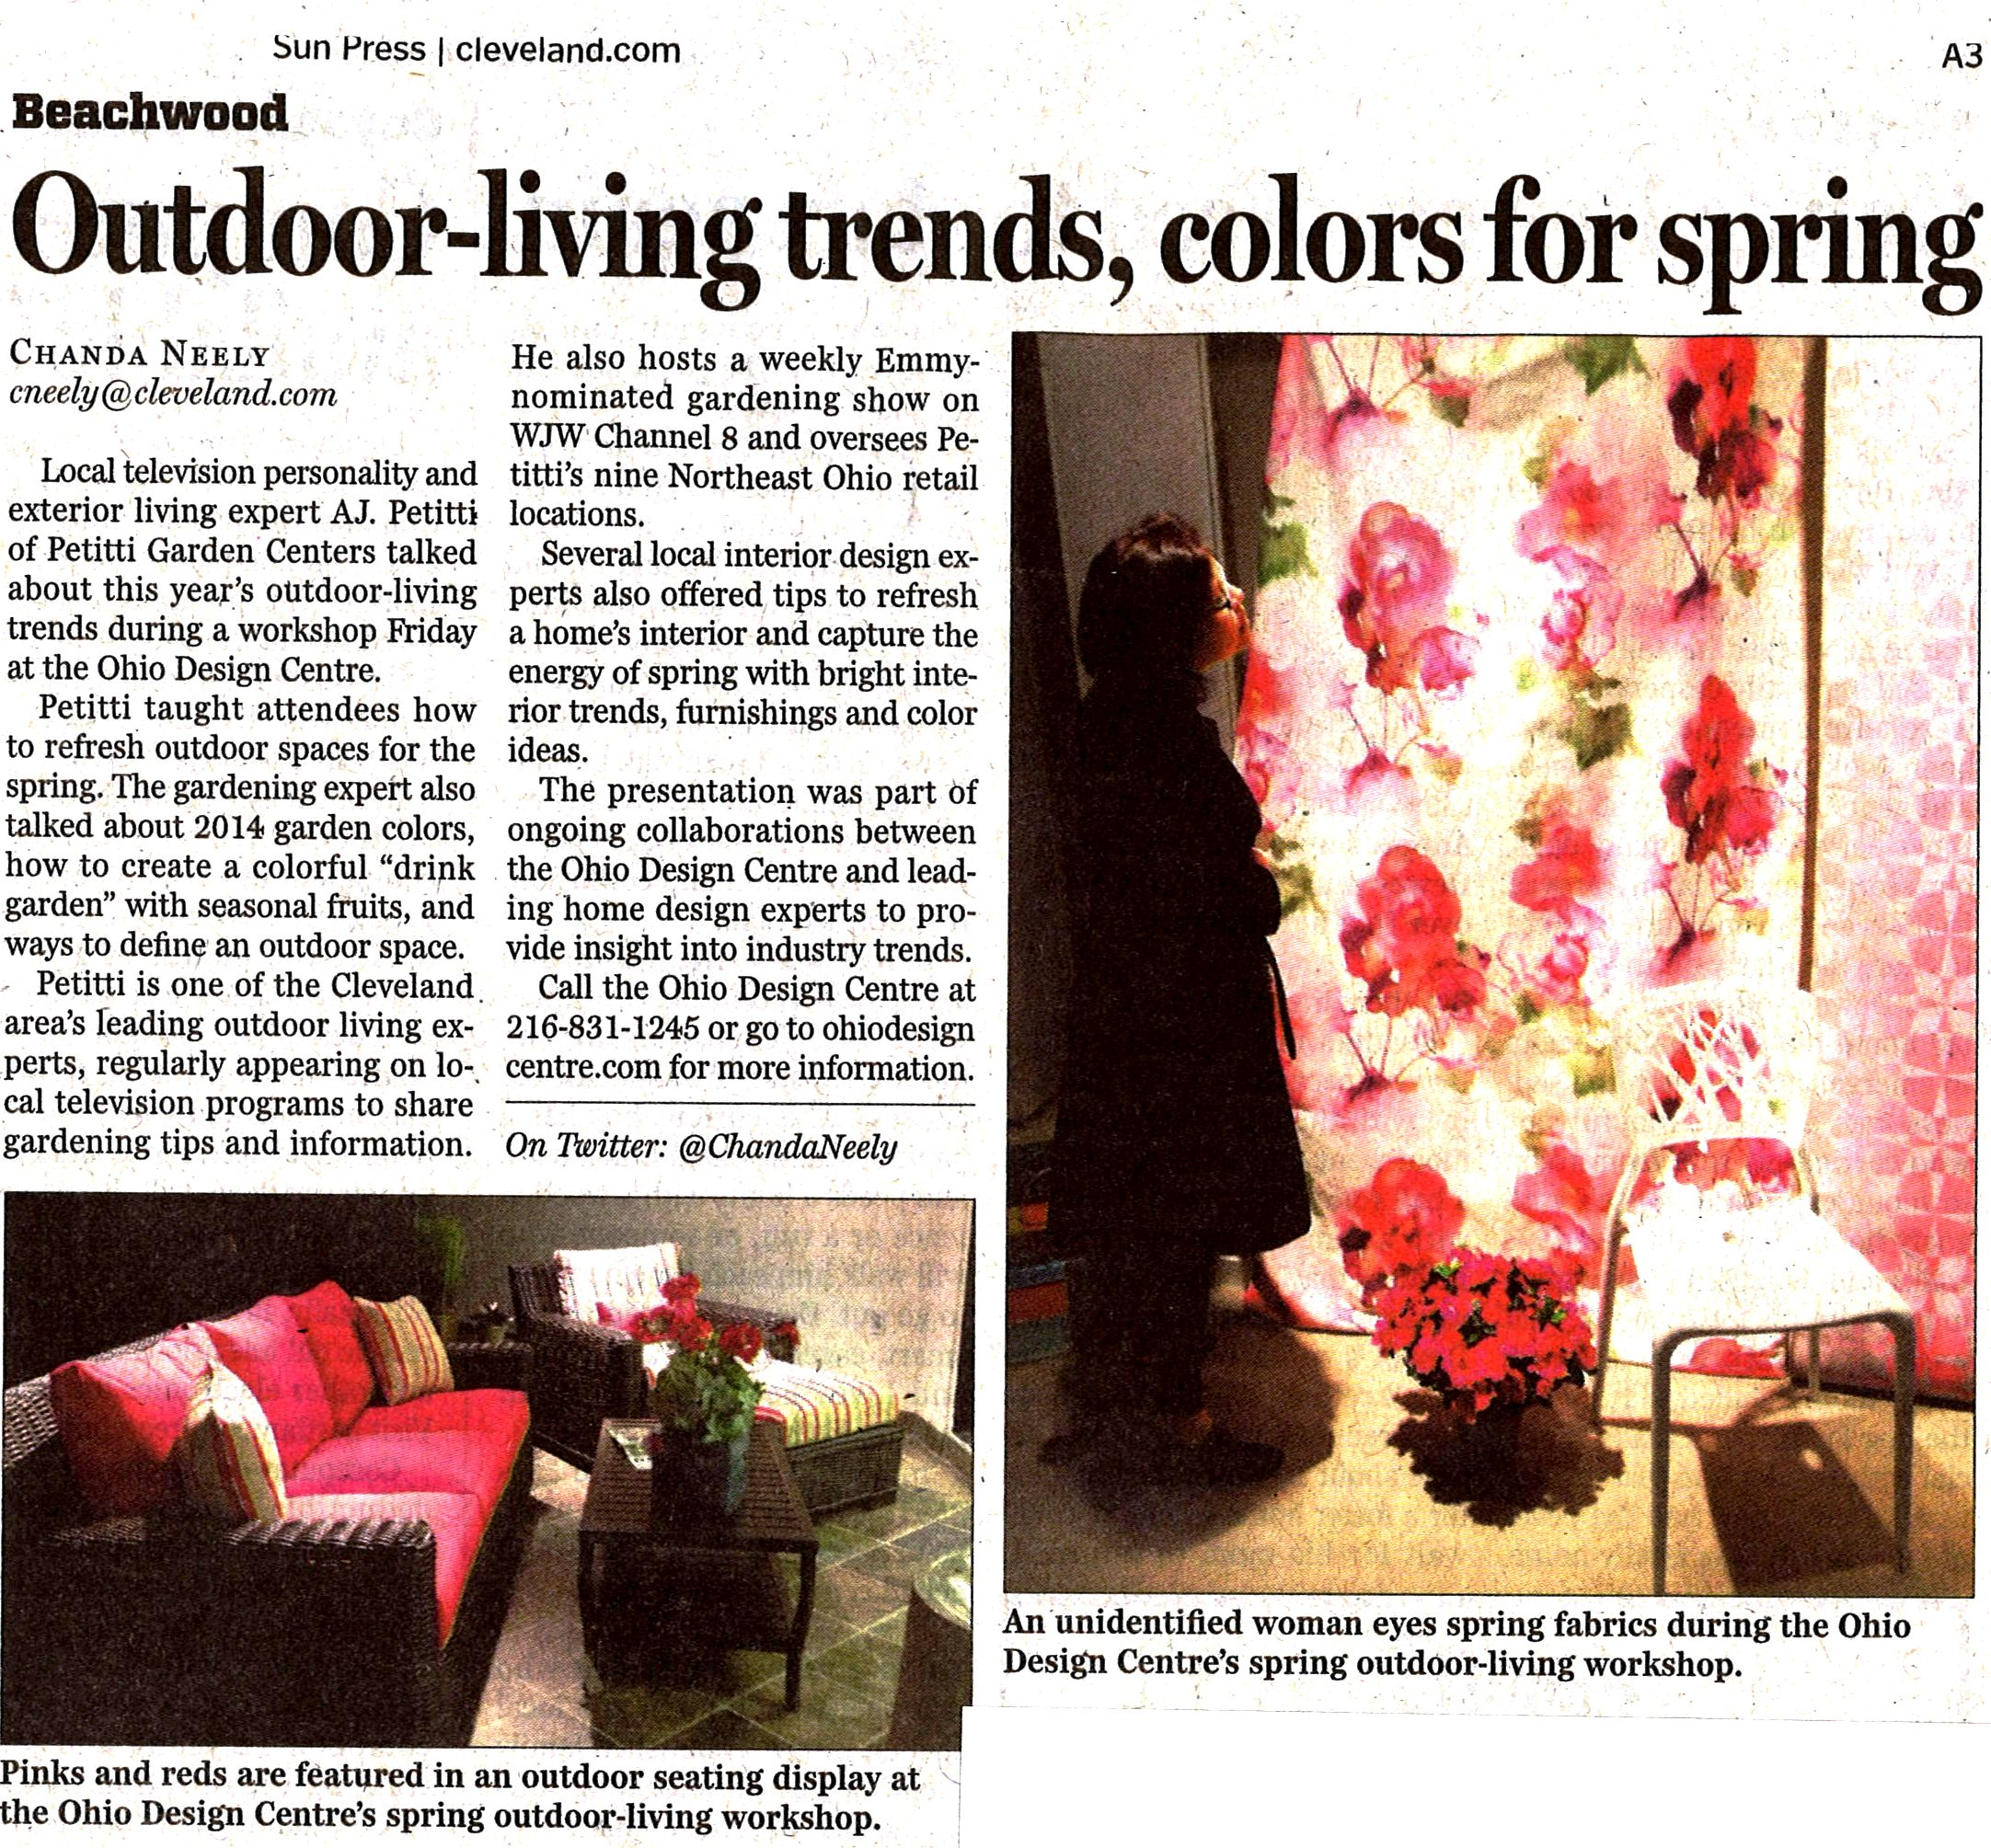 Outdoor-living trends, colors for spring